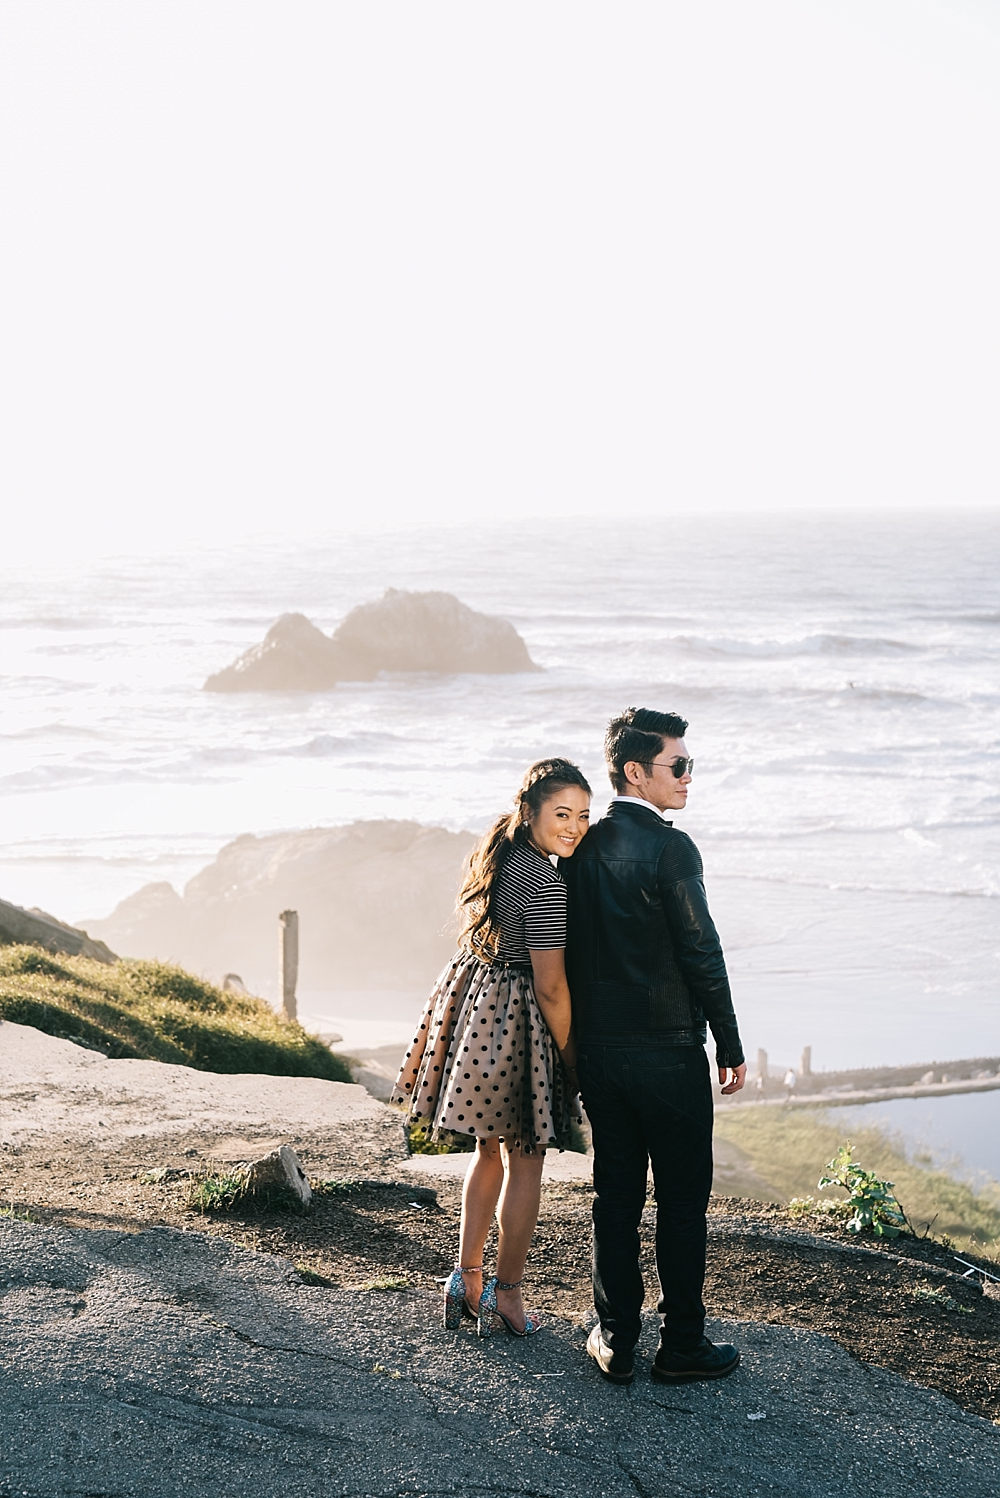 sanfransico-engagement-photographer-carissa-woo-photography_0043